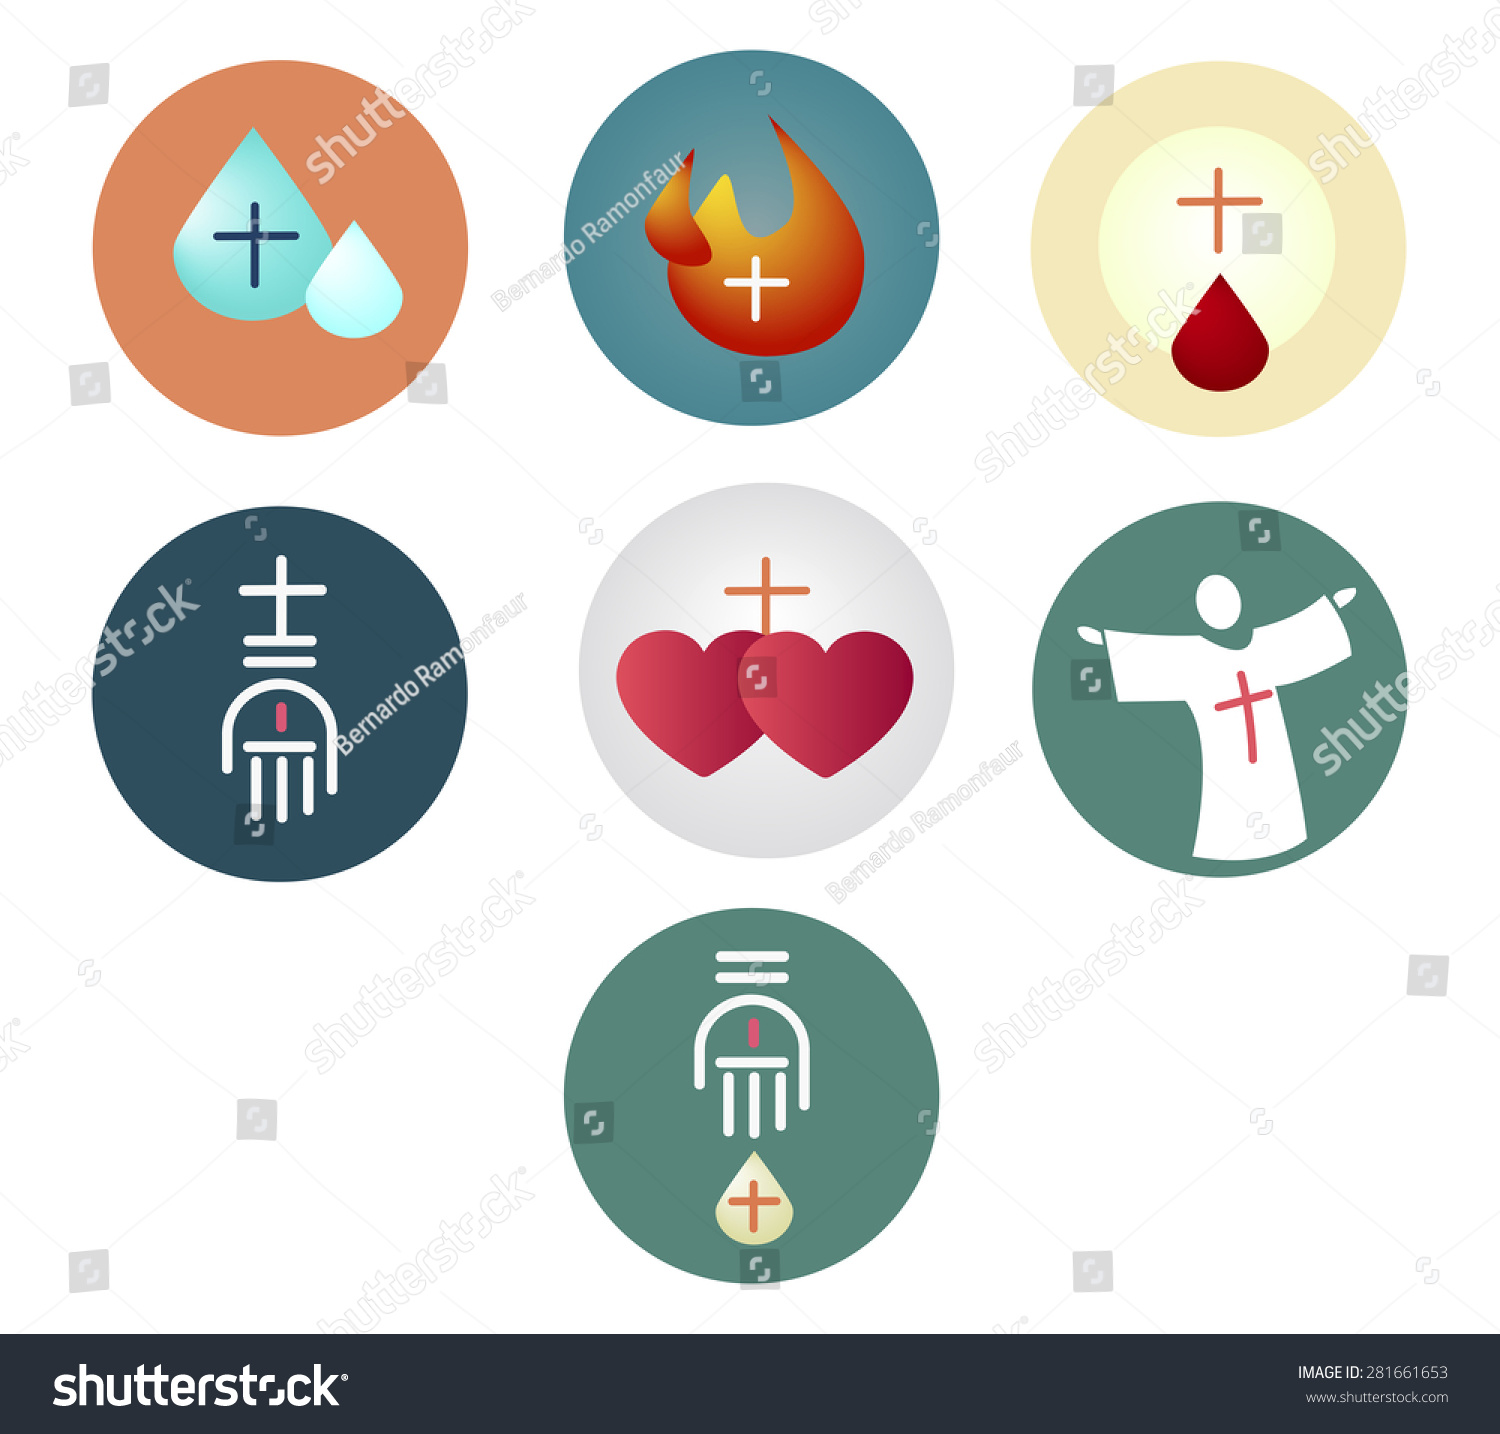 Vector Illustration Or Drawing Of The 7 Sacraments Of The